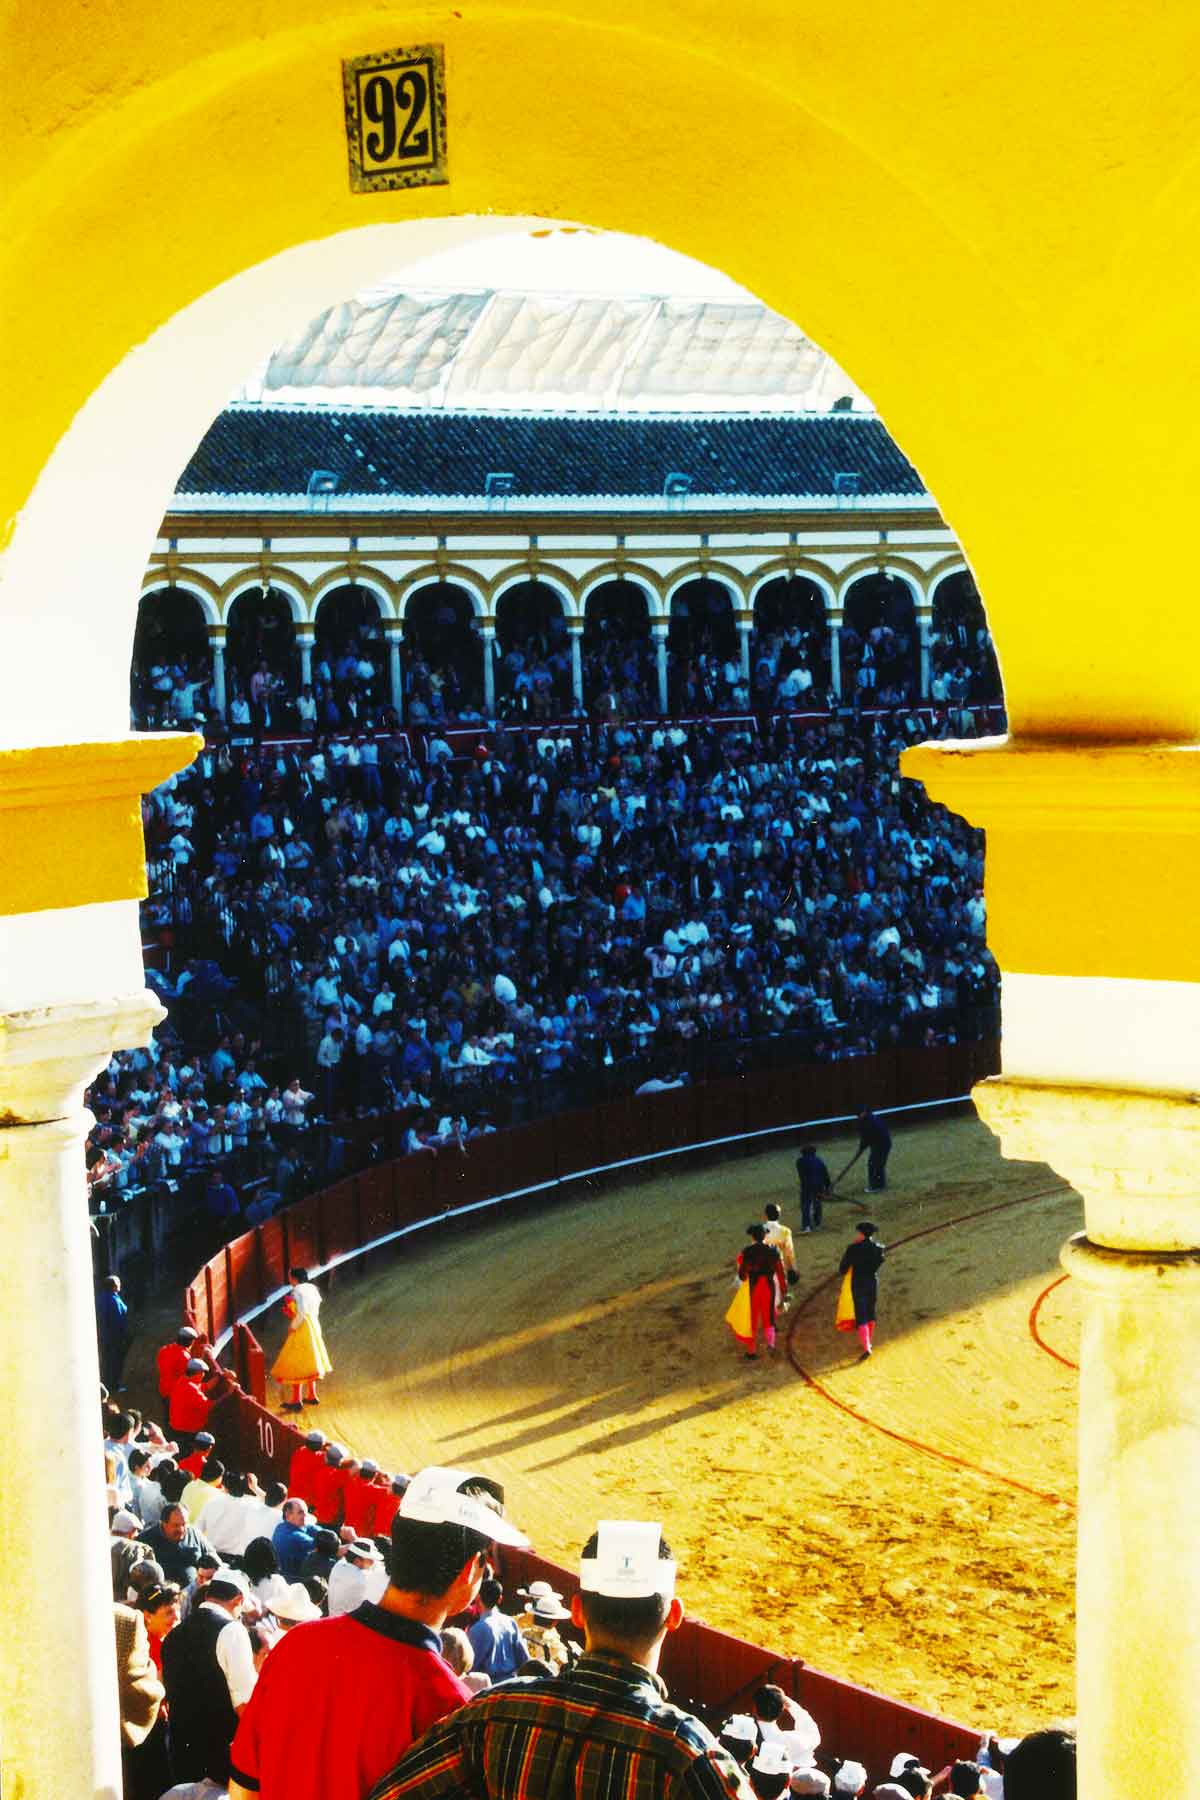 Seville Bullring 1998 - Steven Andrew Martin - Spain Photo Journal